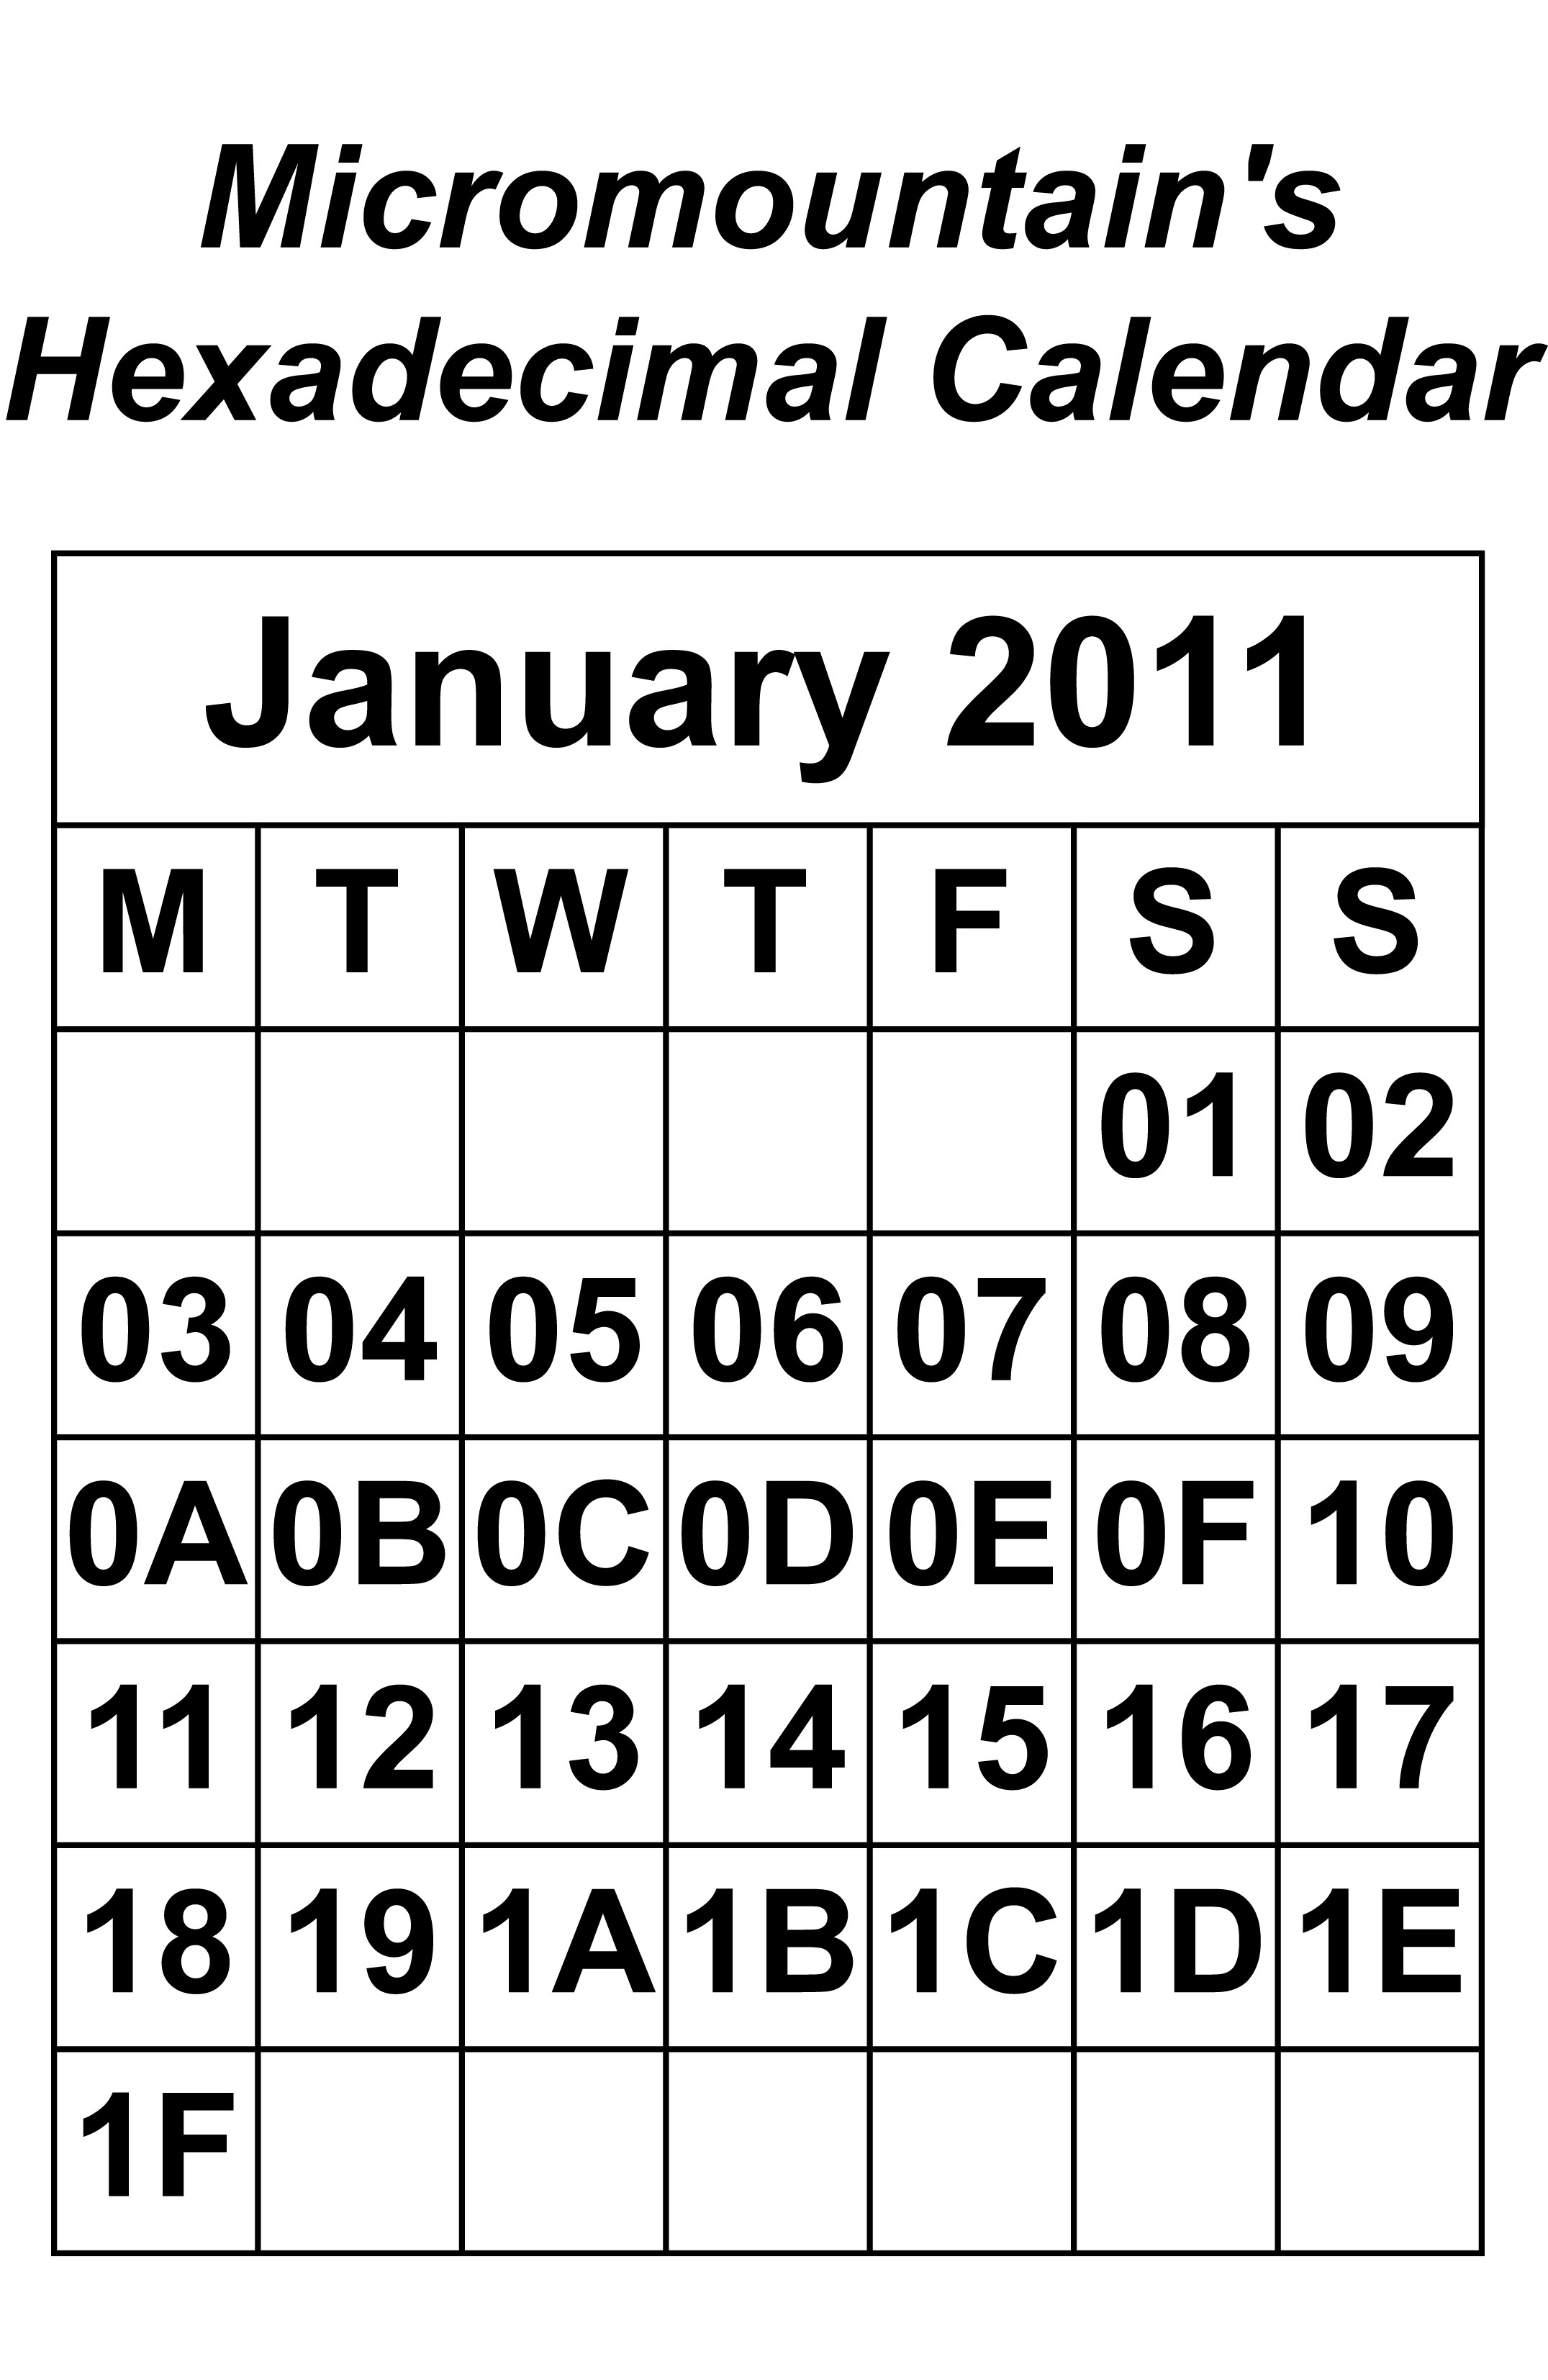 January February March Calendar Más Recientes Hexadecimal Calendar A4 Of January February March Calendar Más Caliente Special Days Calendar for Occasions to Celebrate